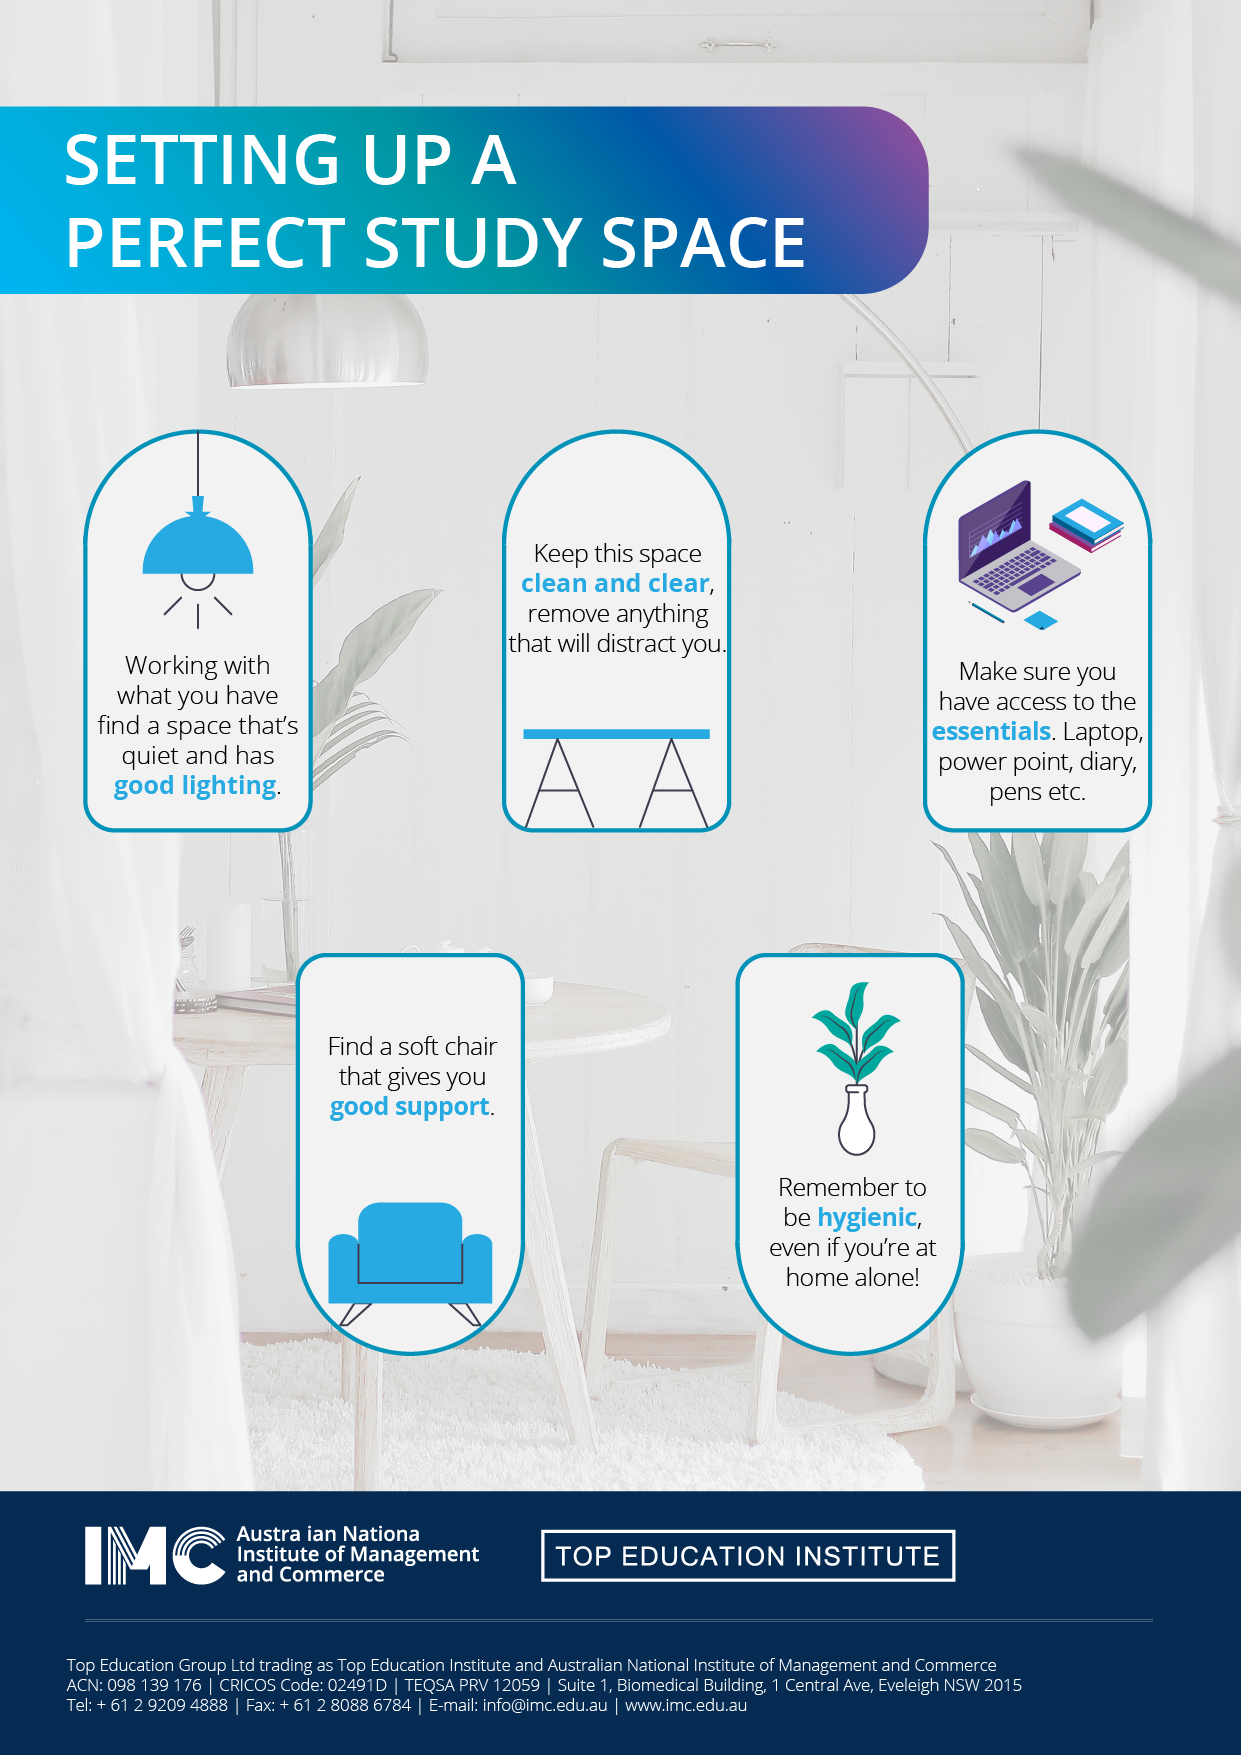 poster for setting up a perfect study space